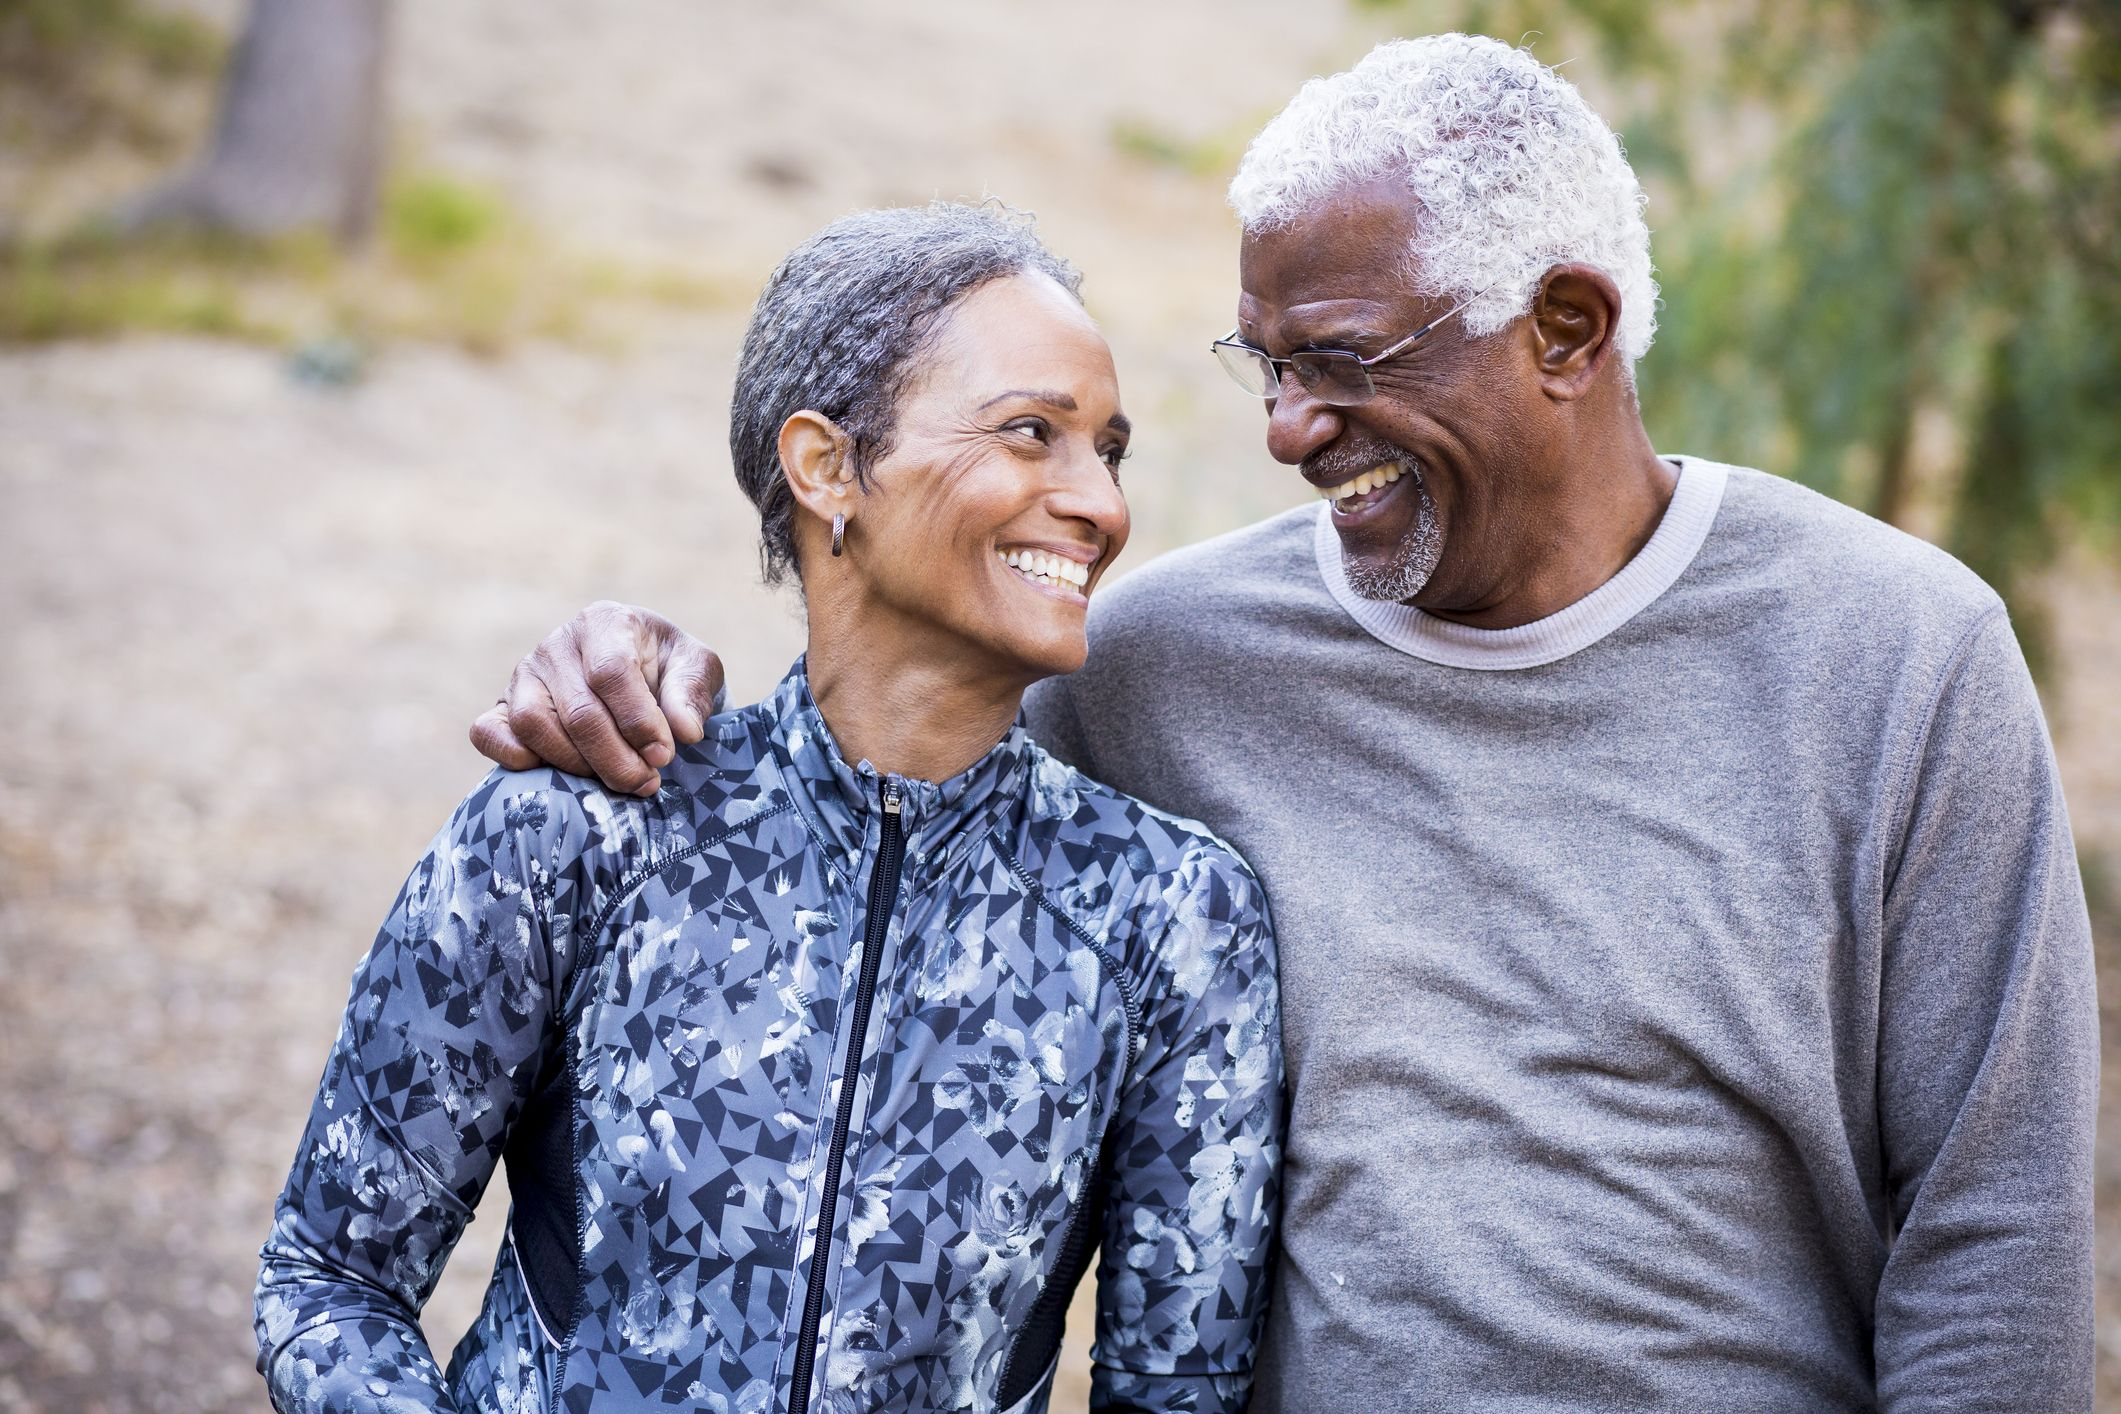 9 Best Ways to Reduce Your Risk of a Stroke, According to Cardiologists